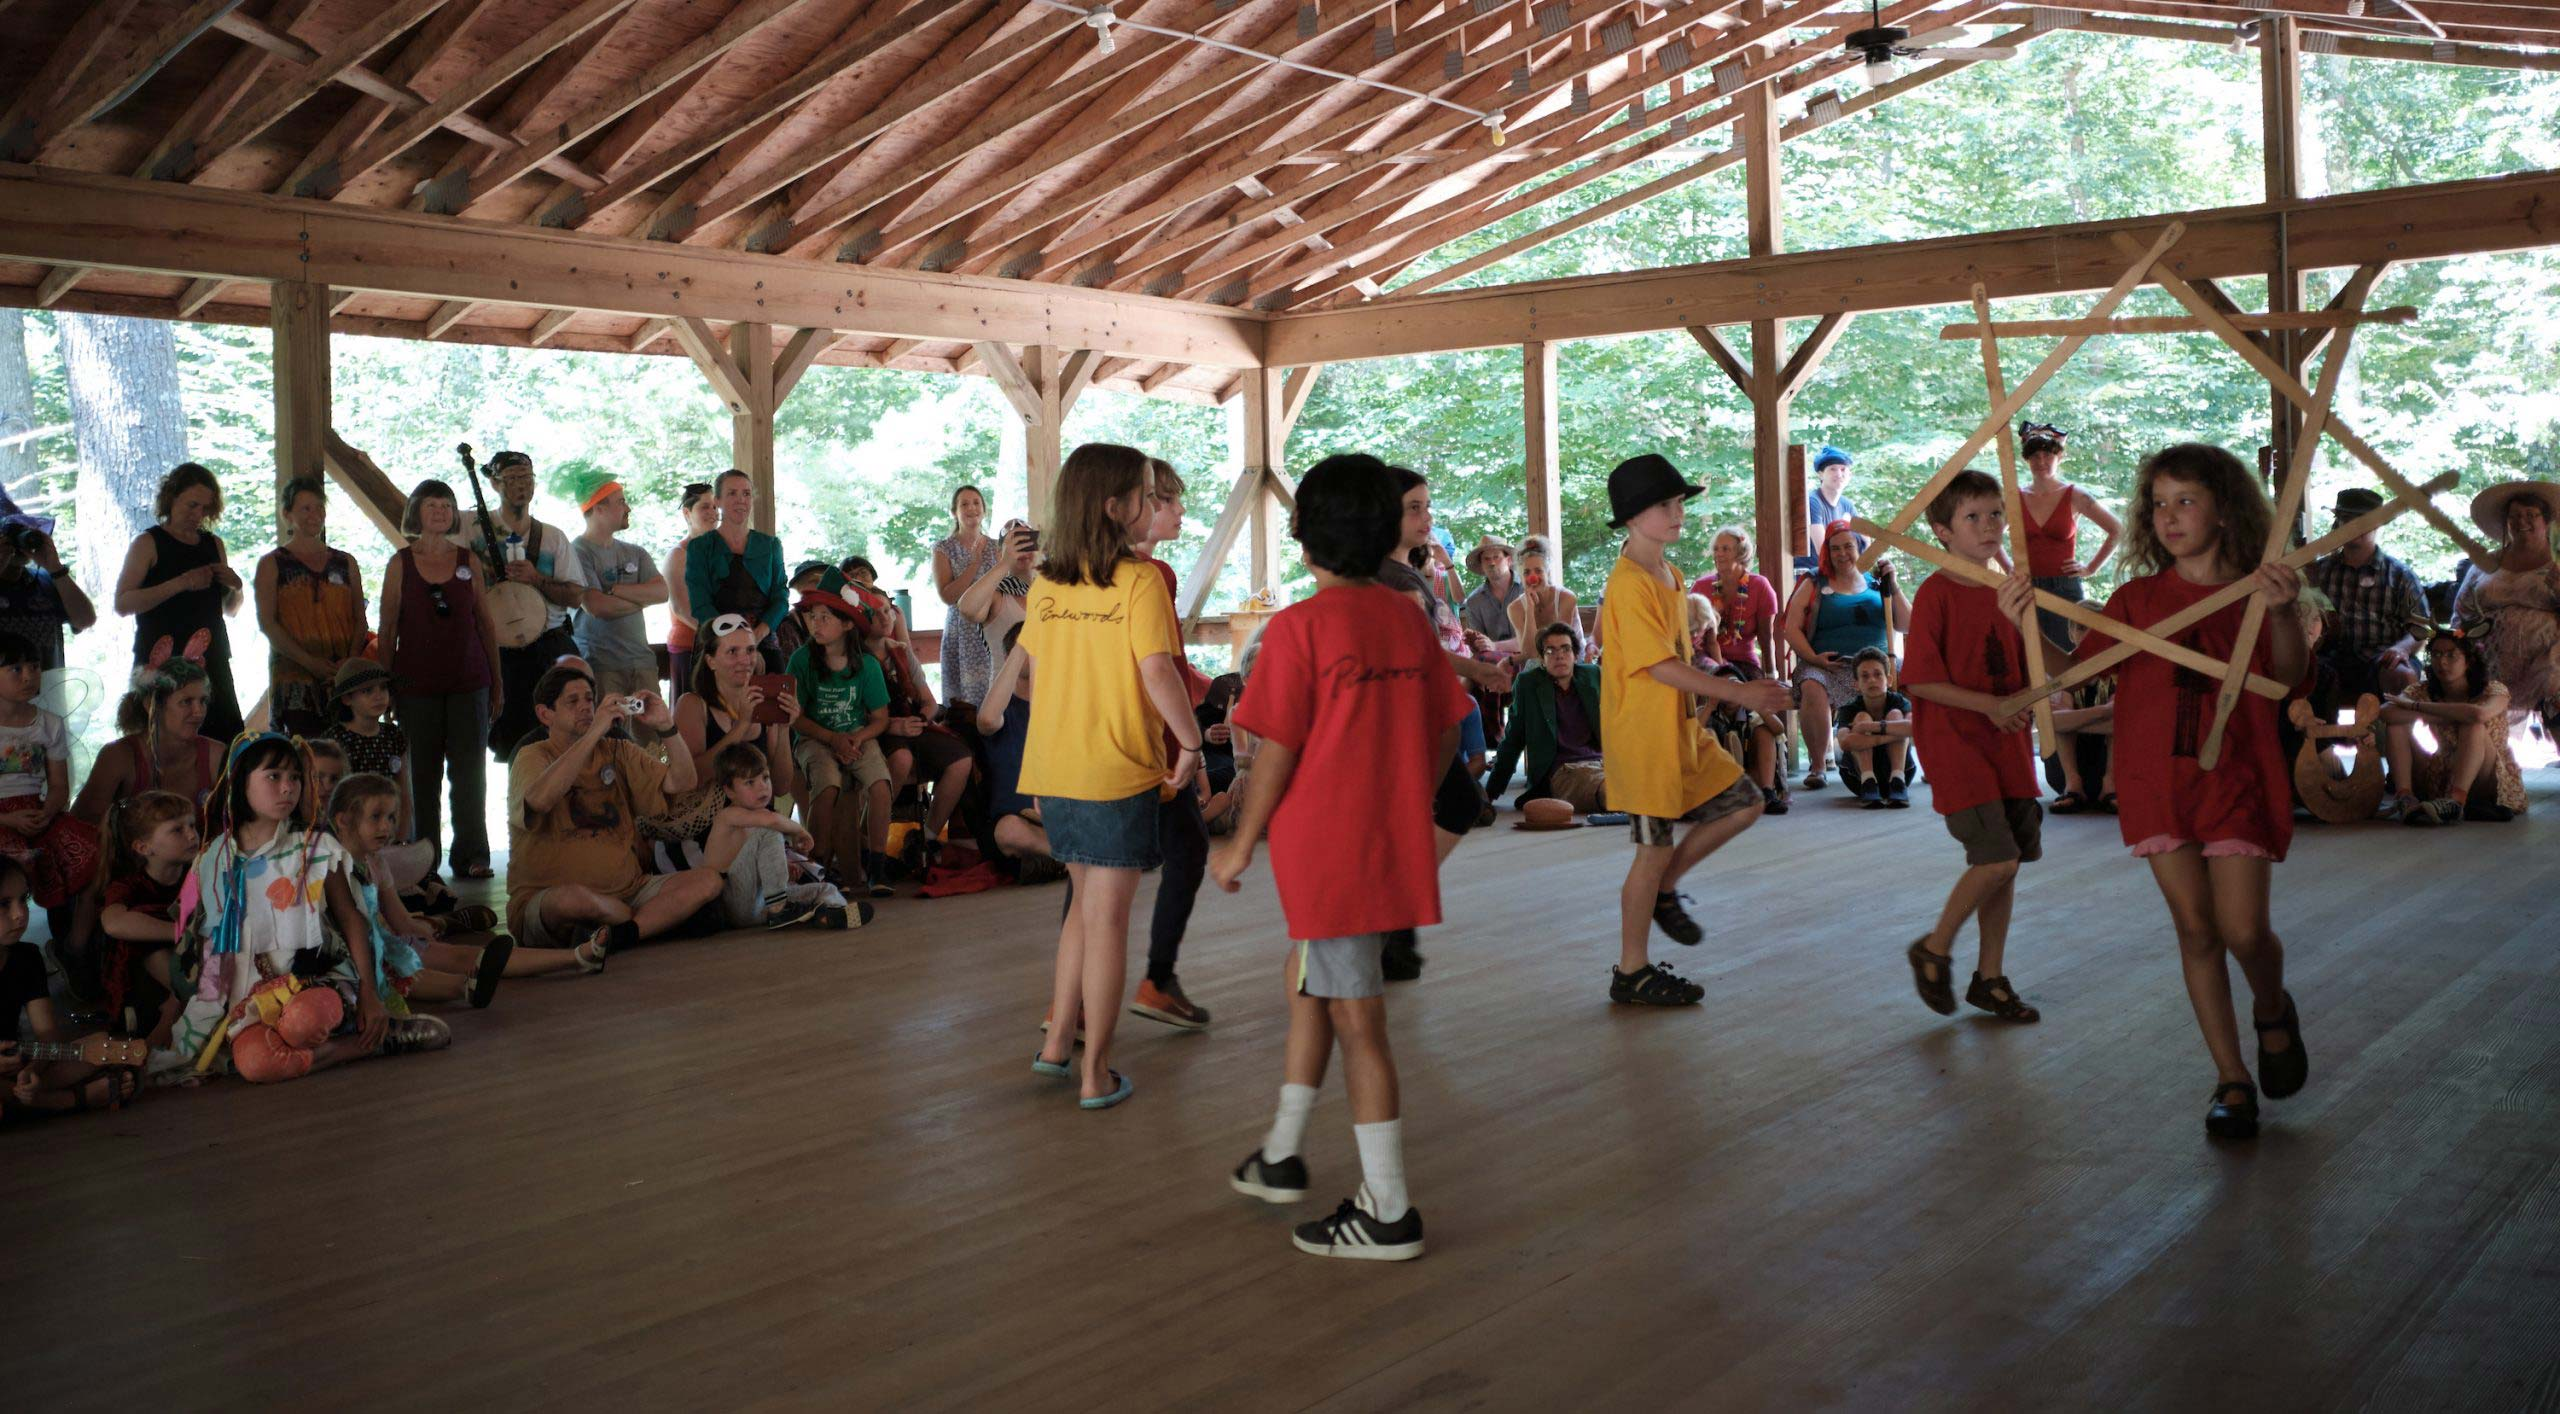 Children performing a longsword dance